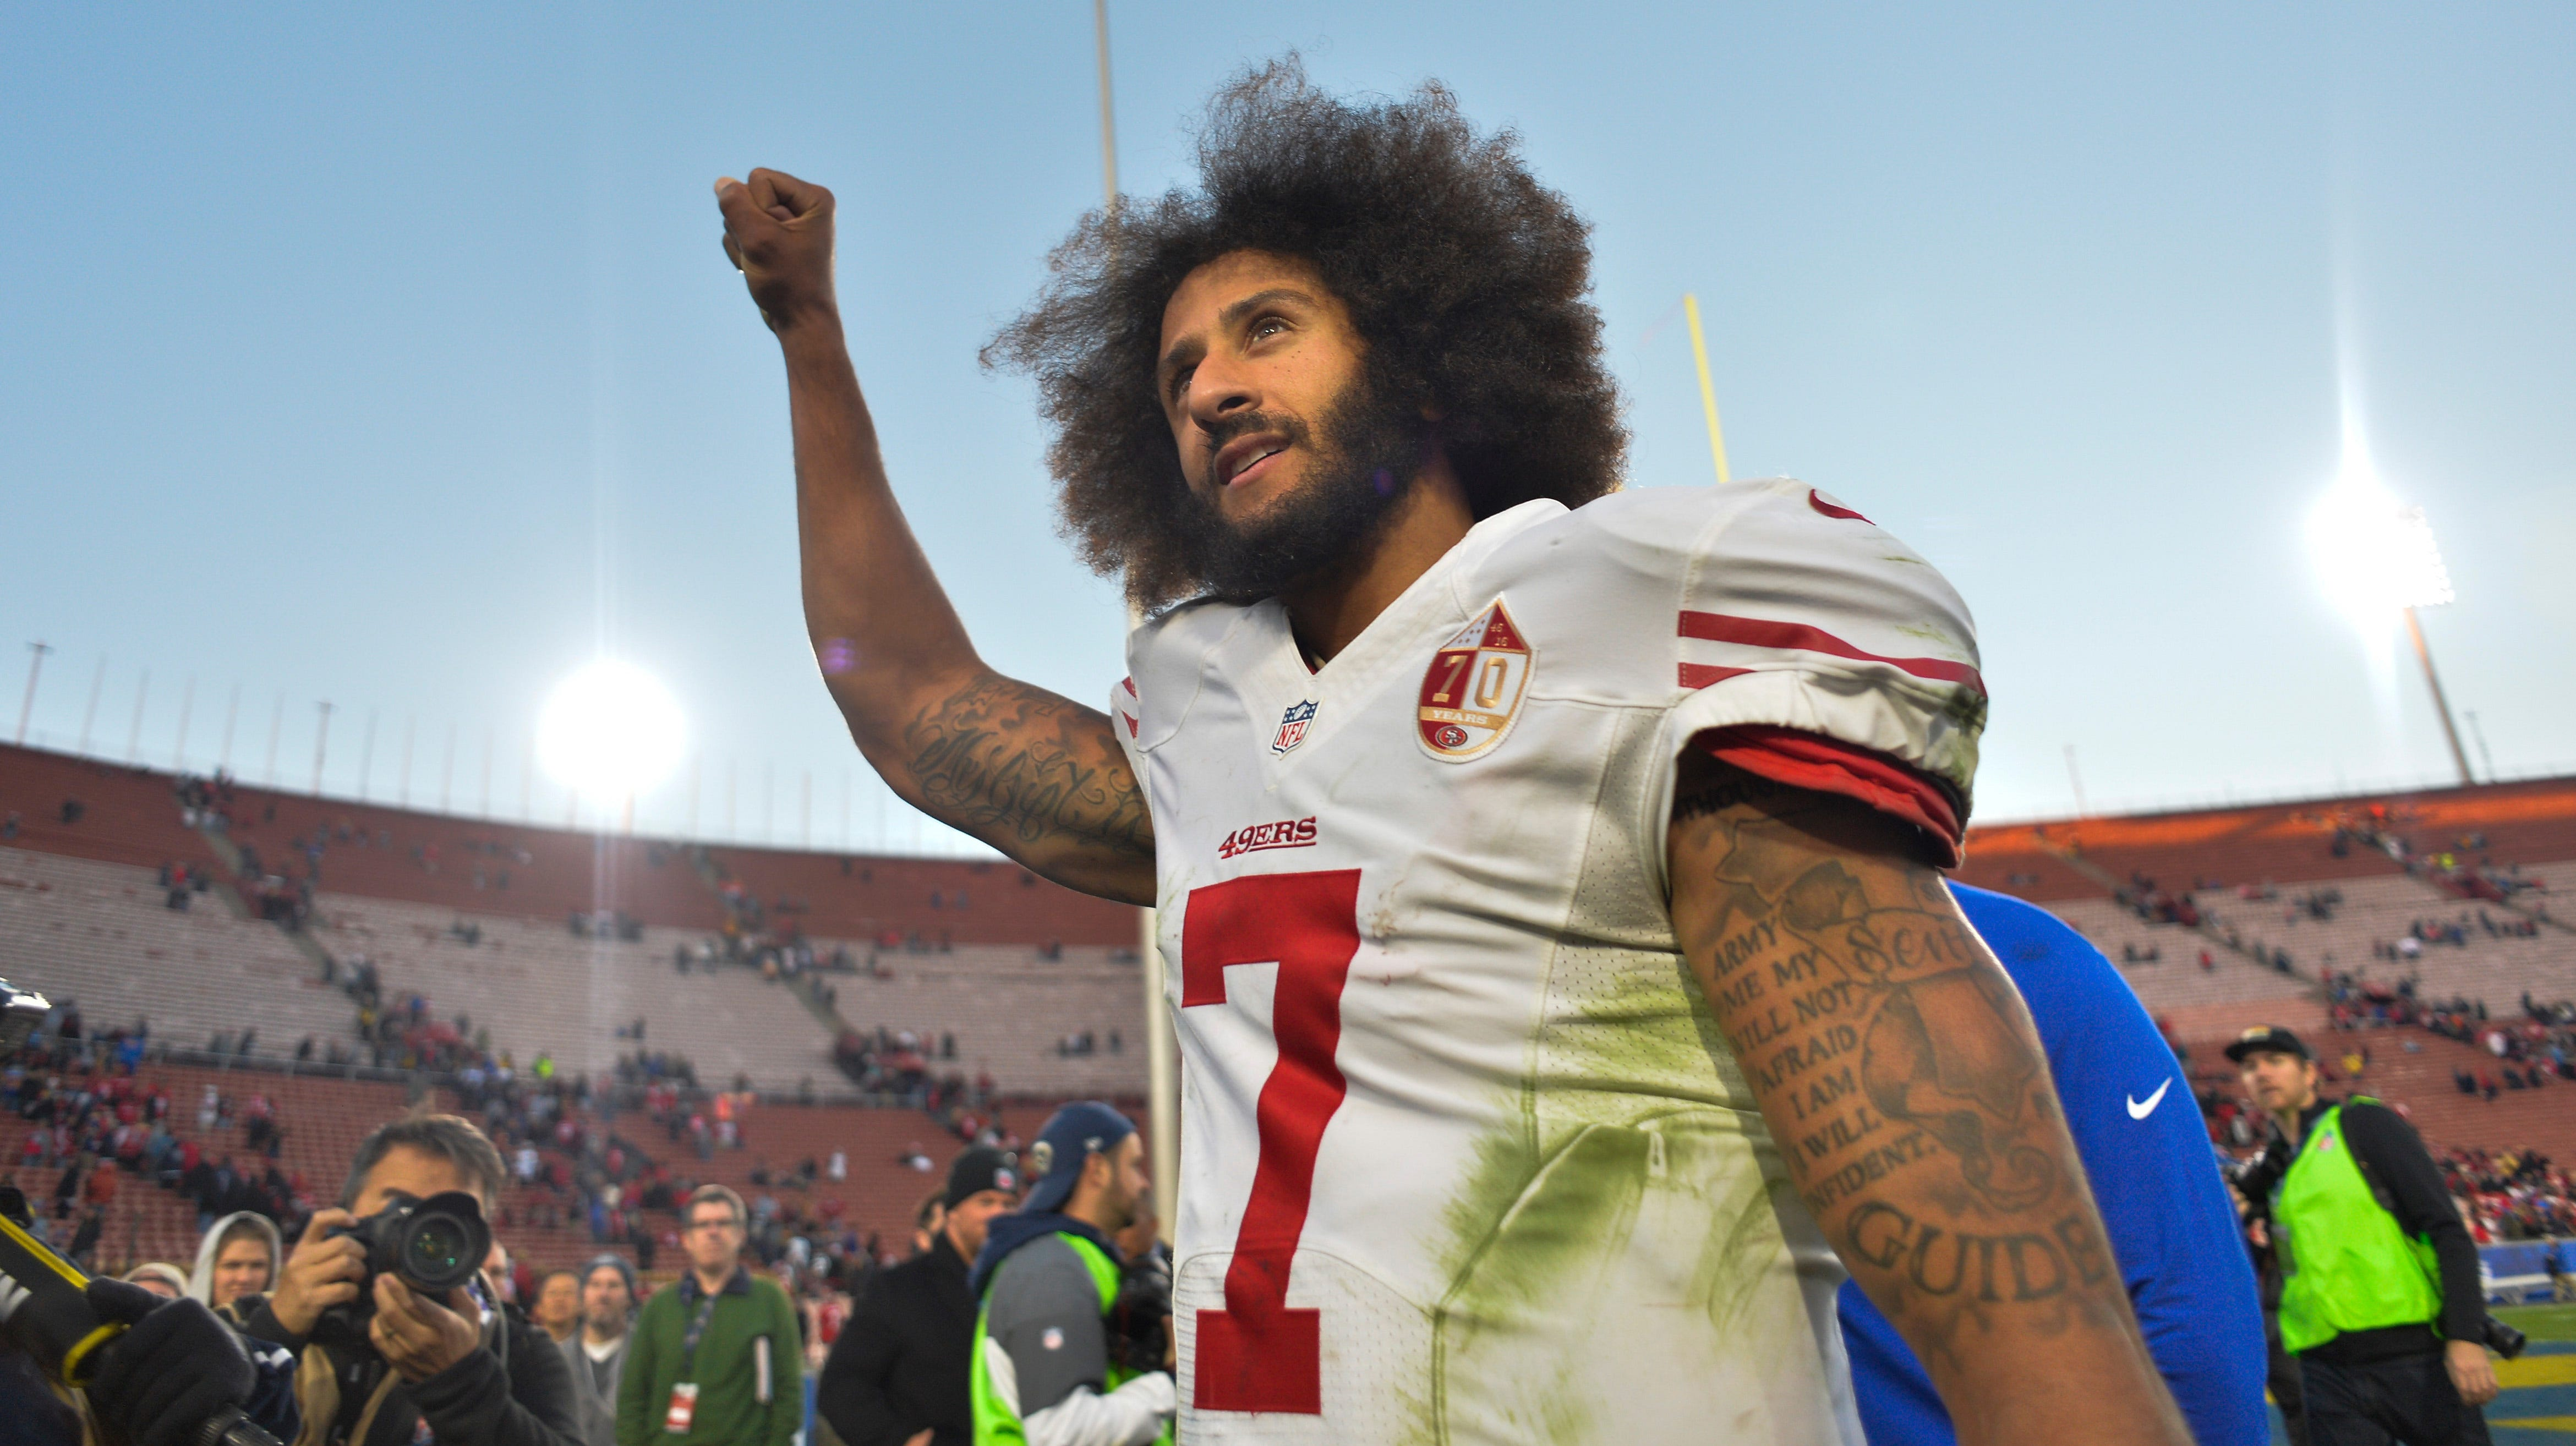 For free agent Colin Kaepernick, principles trump tryout with Seahawks